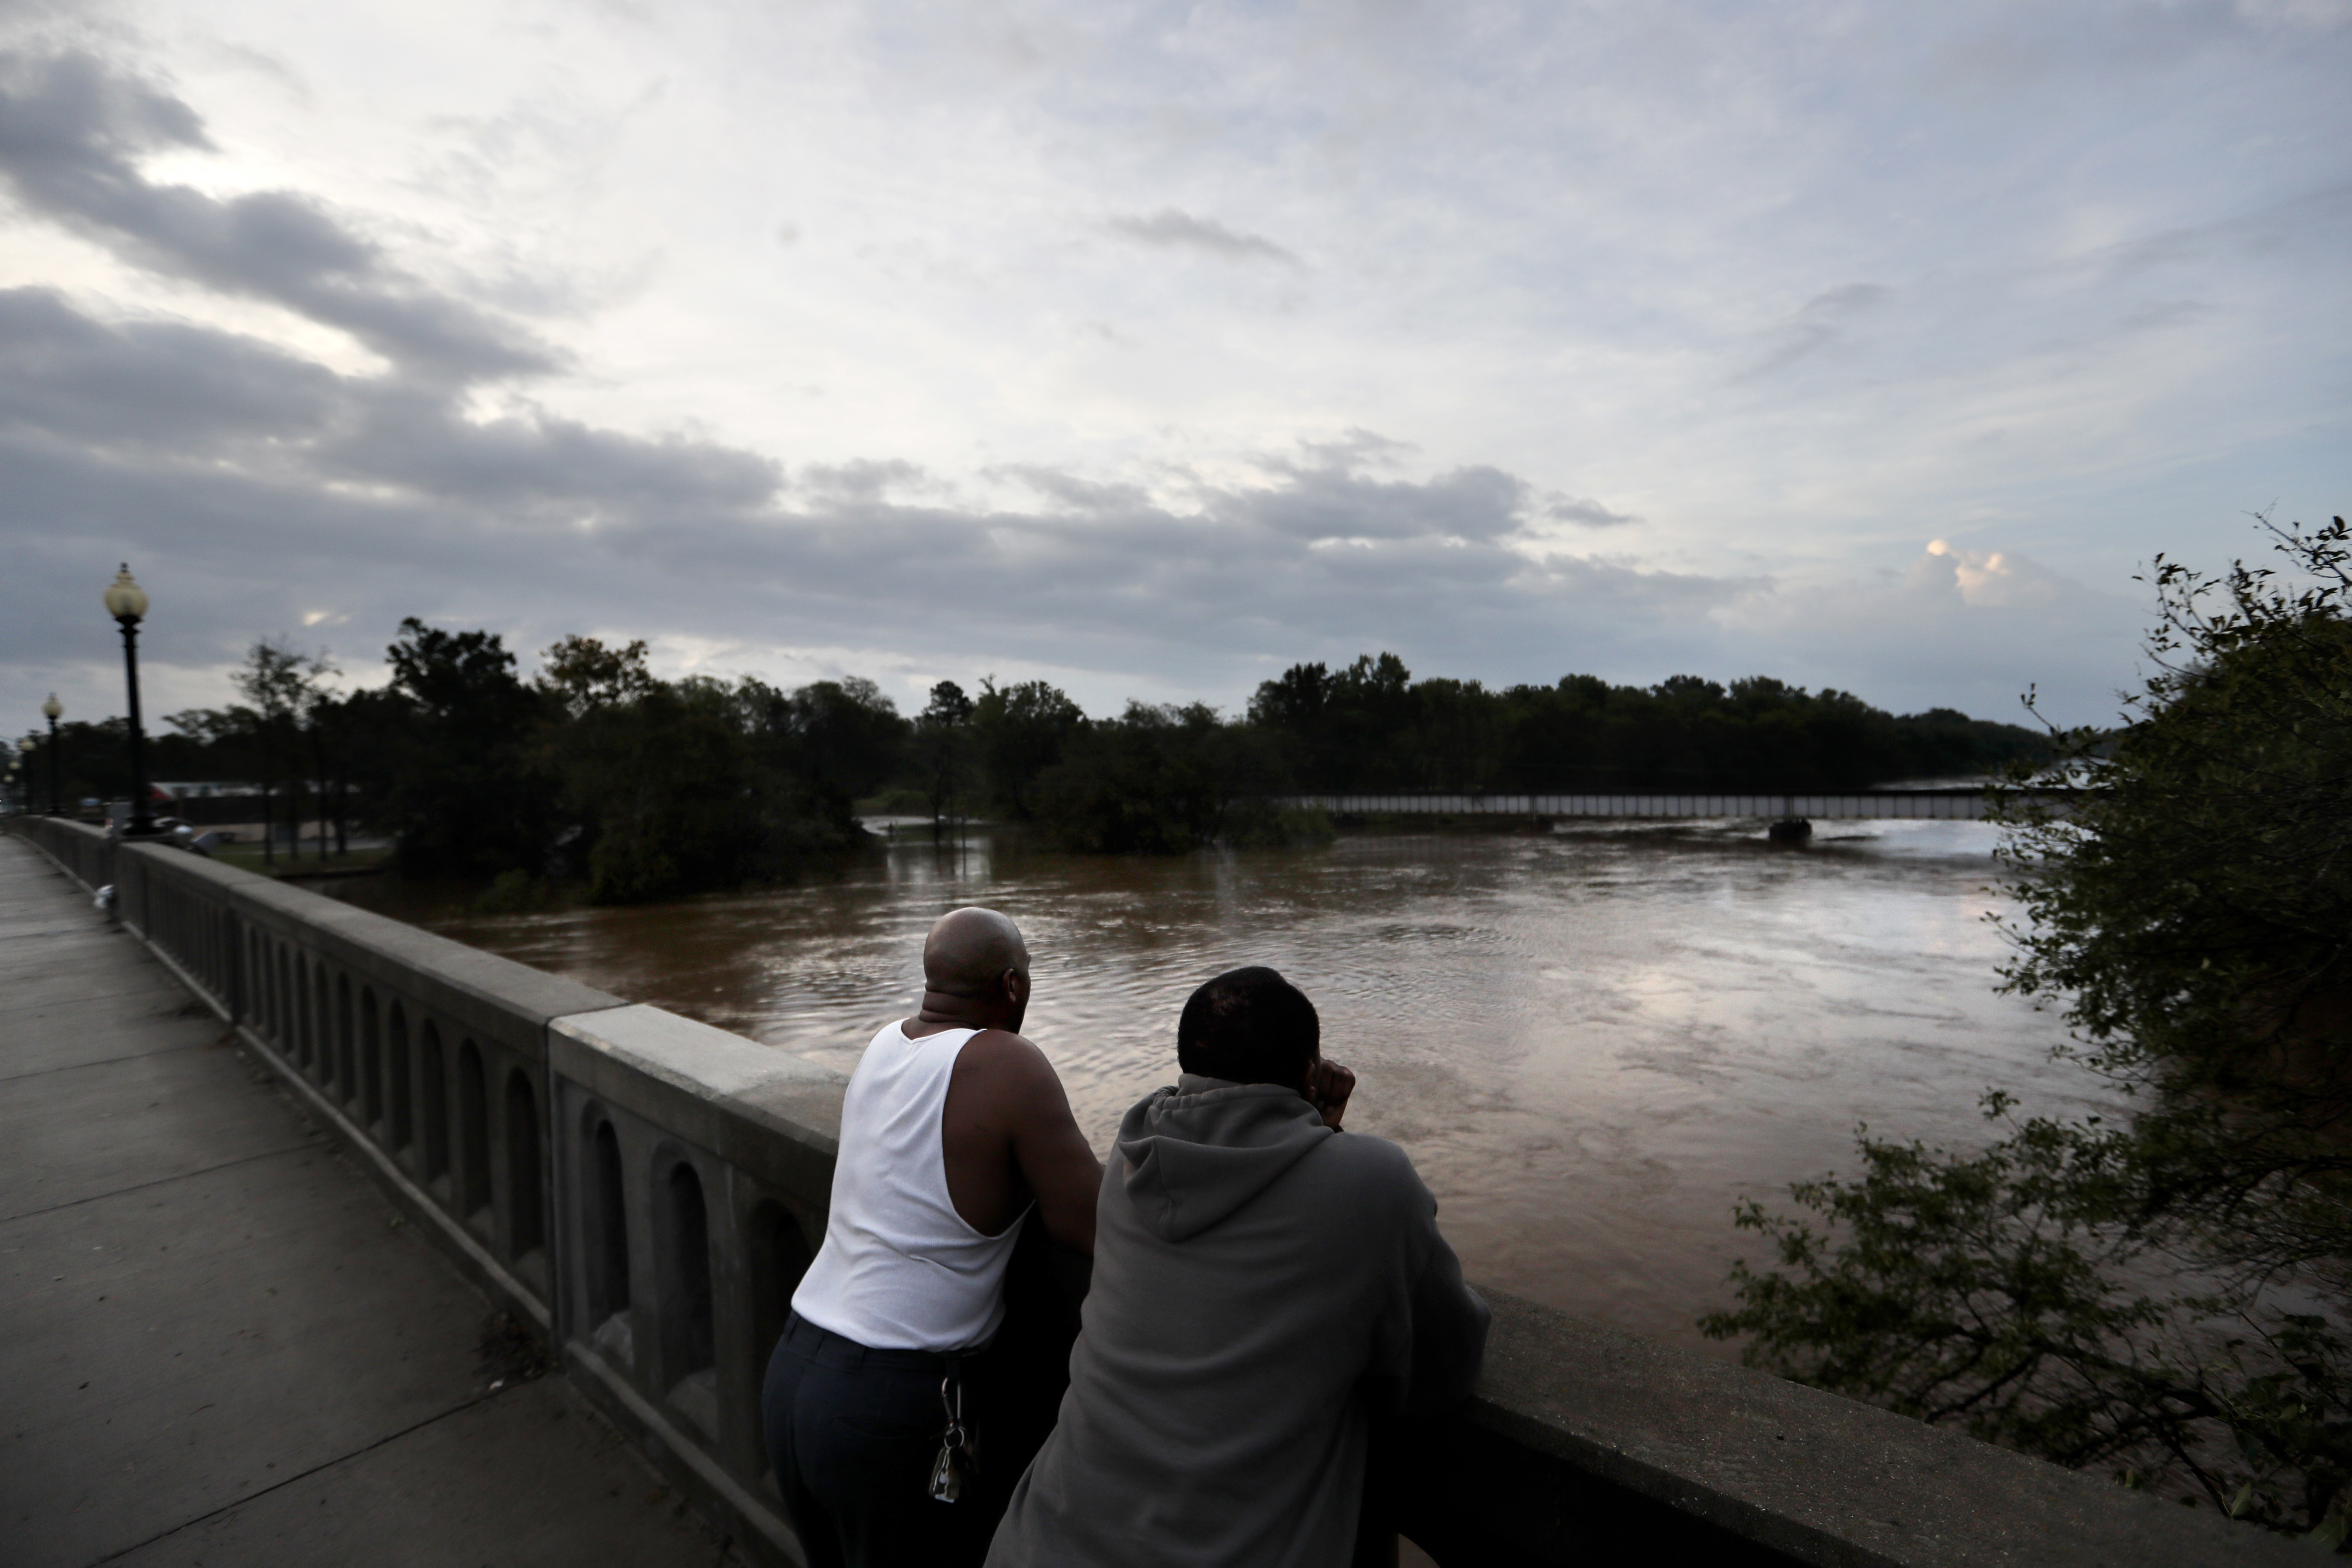 Gerald Generette, right, and Maurice Miller look onto the Cape Fear River as it continues to rise in the aftermath of Florence in Fayetteville, N.C., Monday, Sept. 17, 2018.